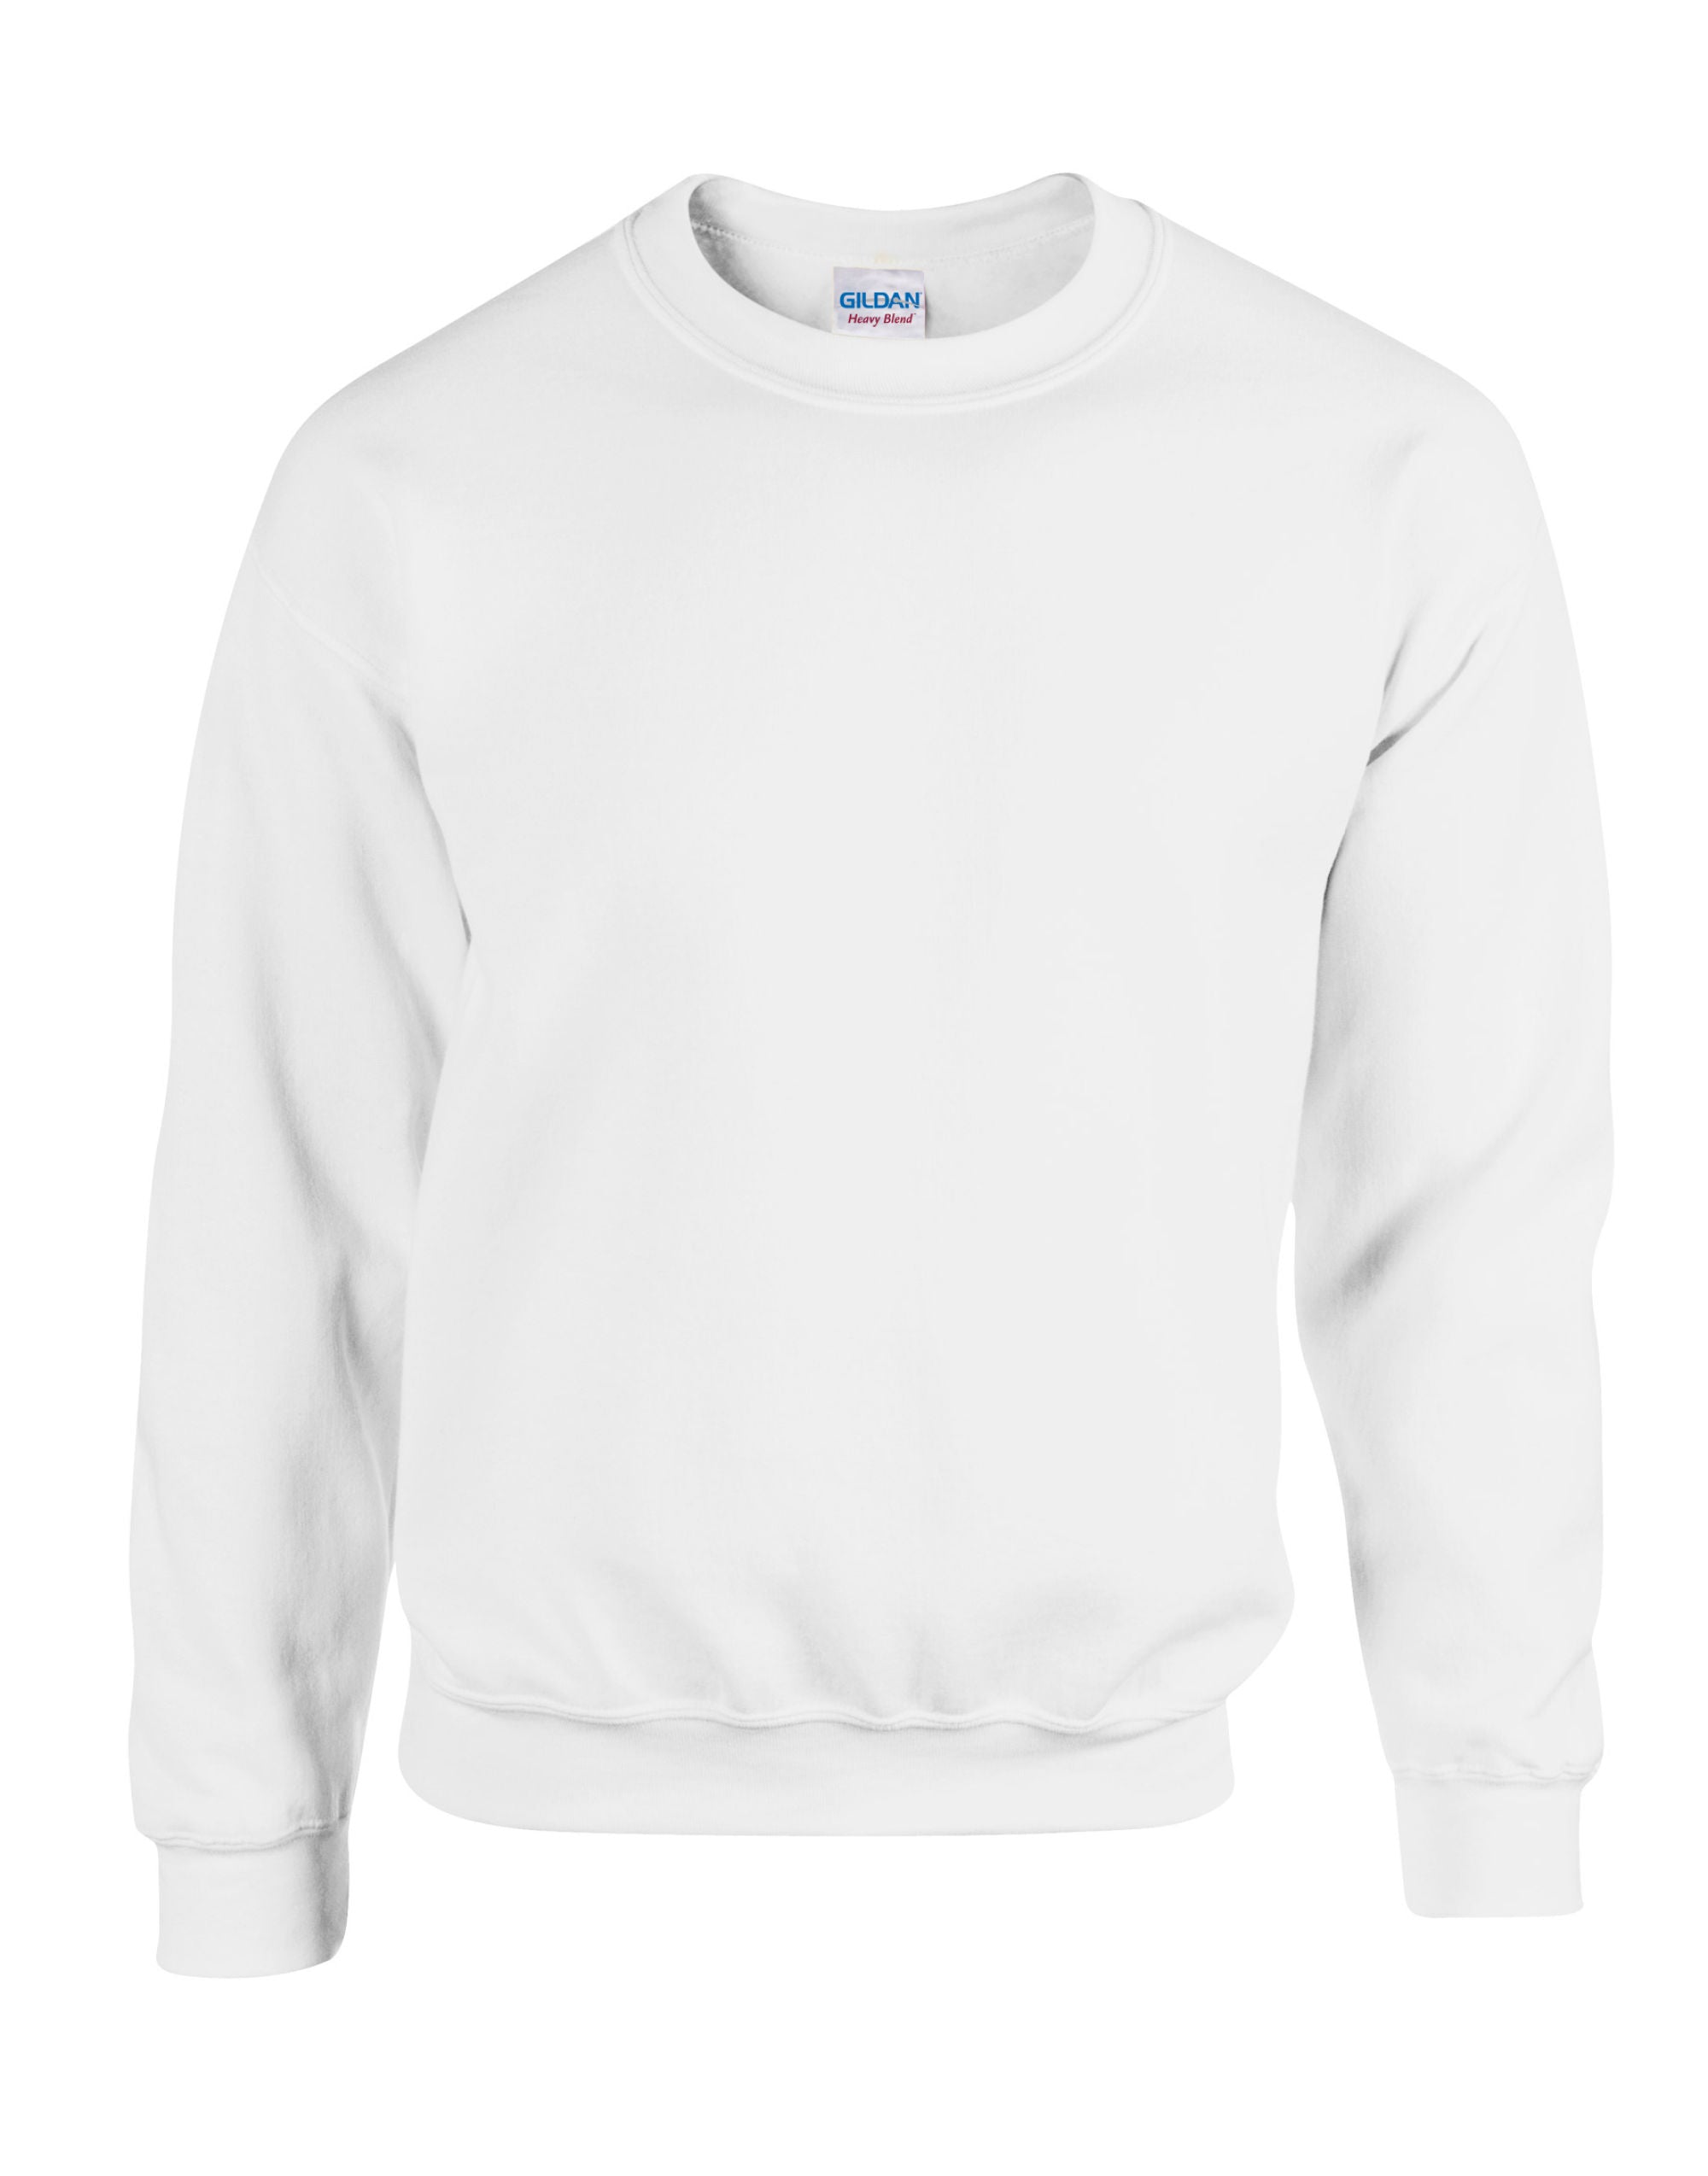 5 x Sweatshirts with Embroidered LOGO